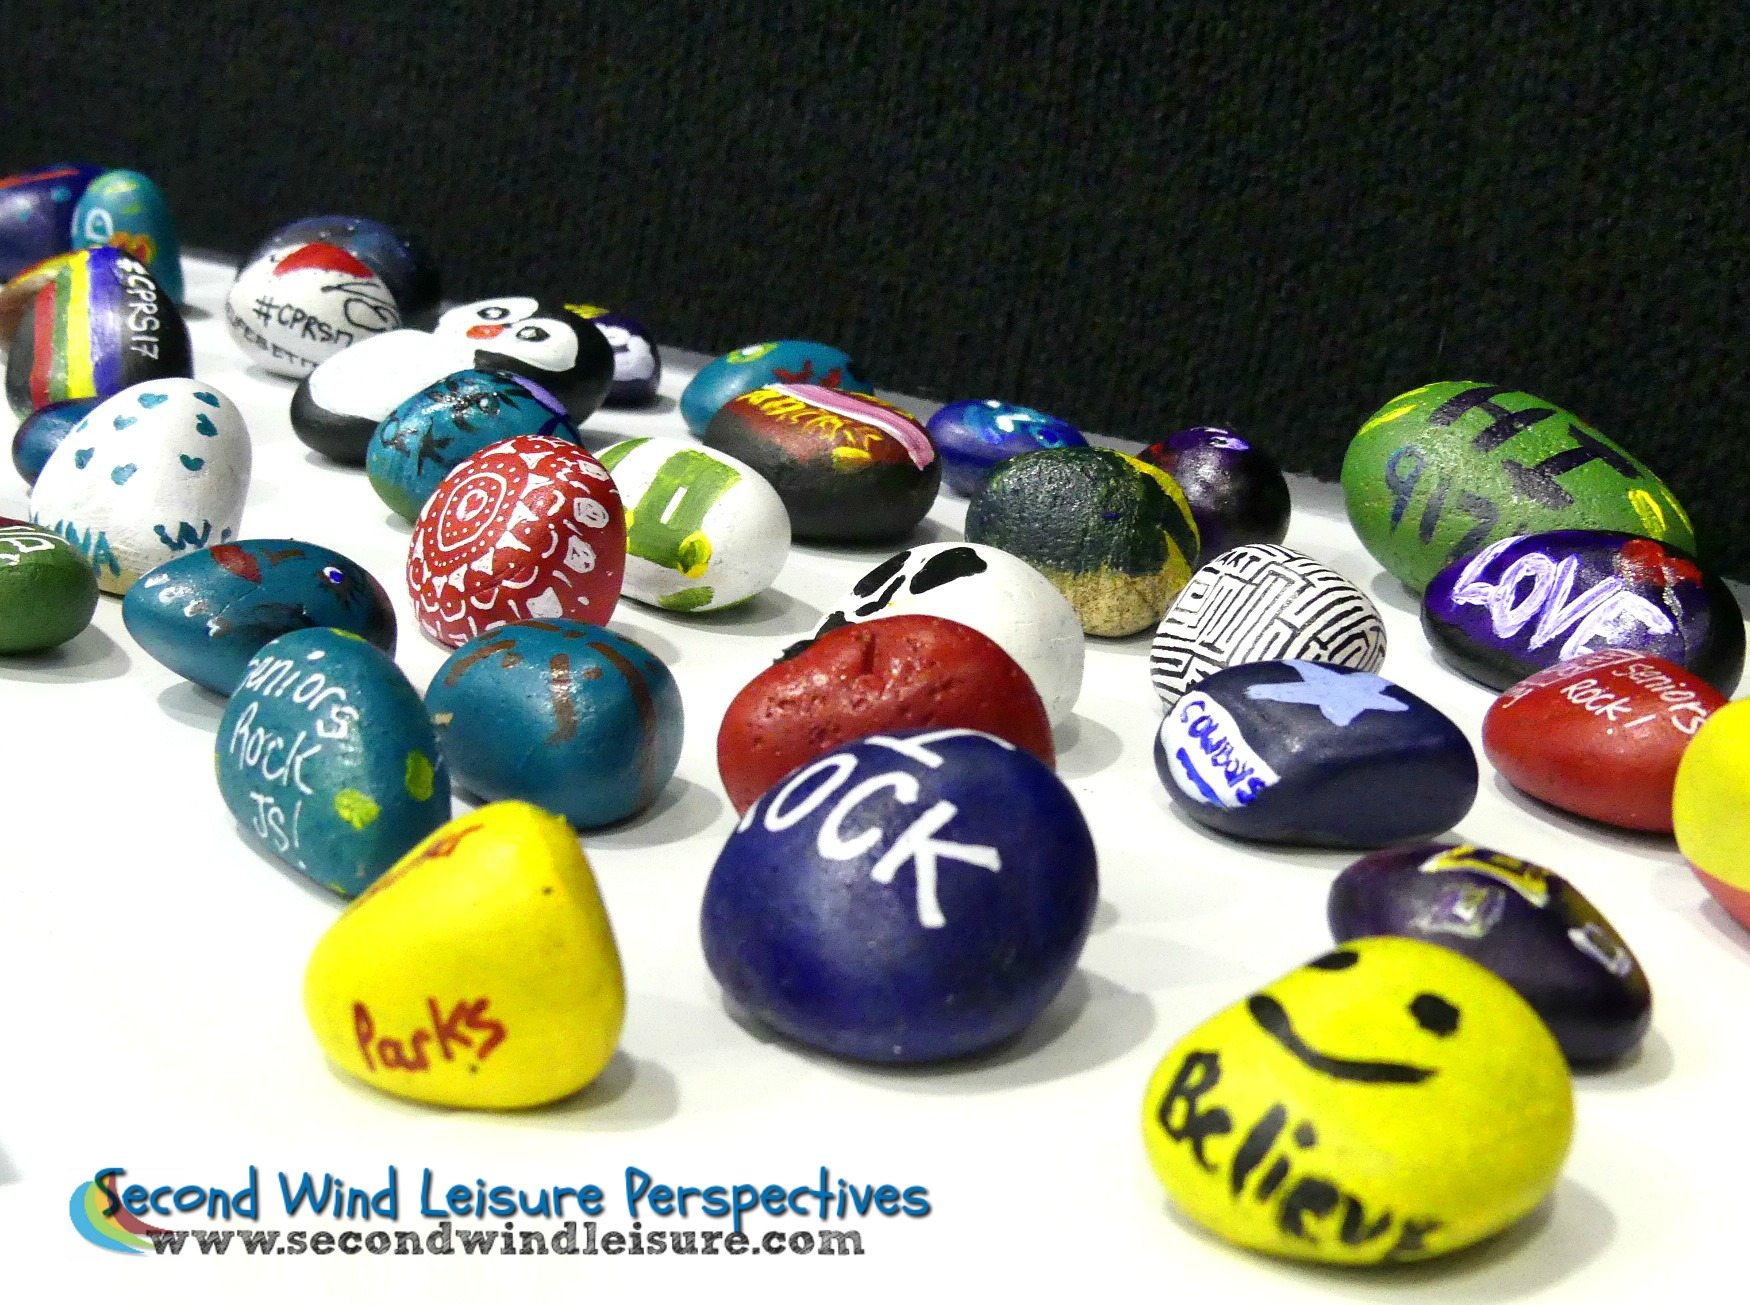 More rocks from the Kindness Rock Project